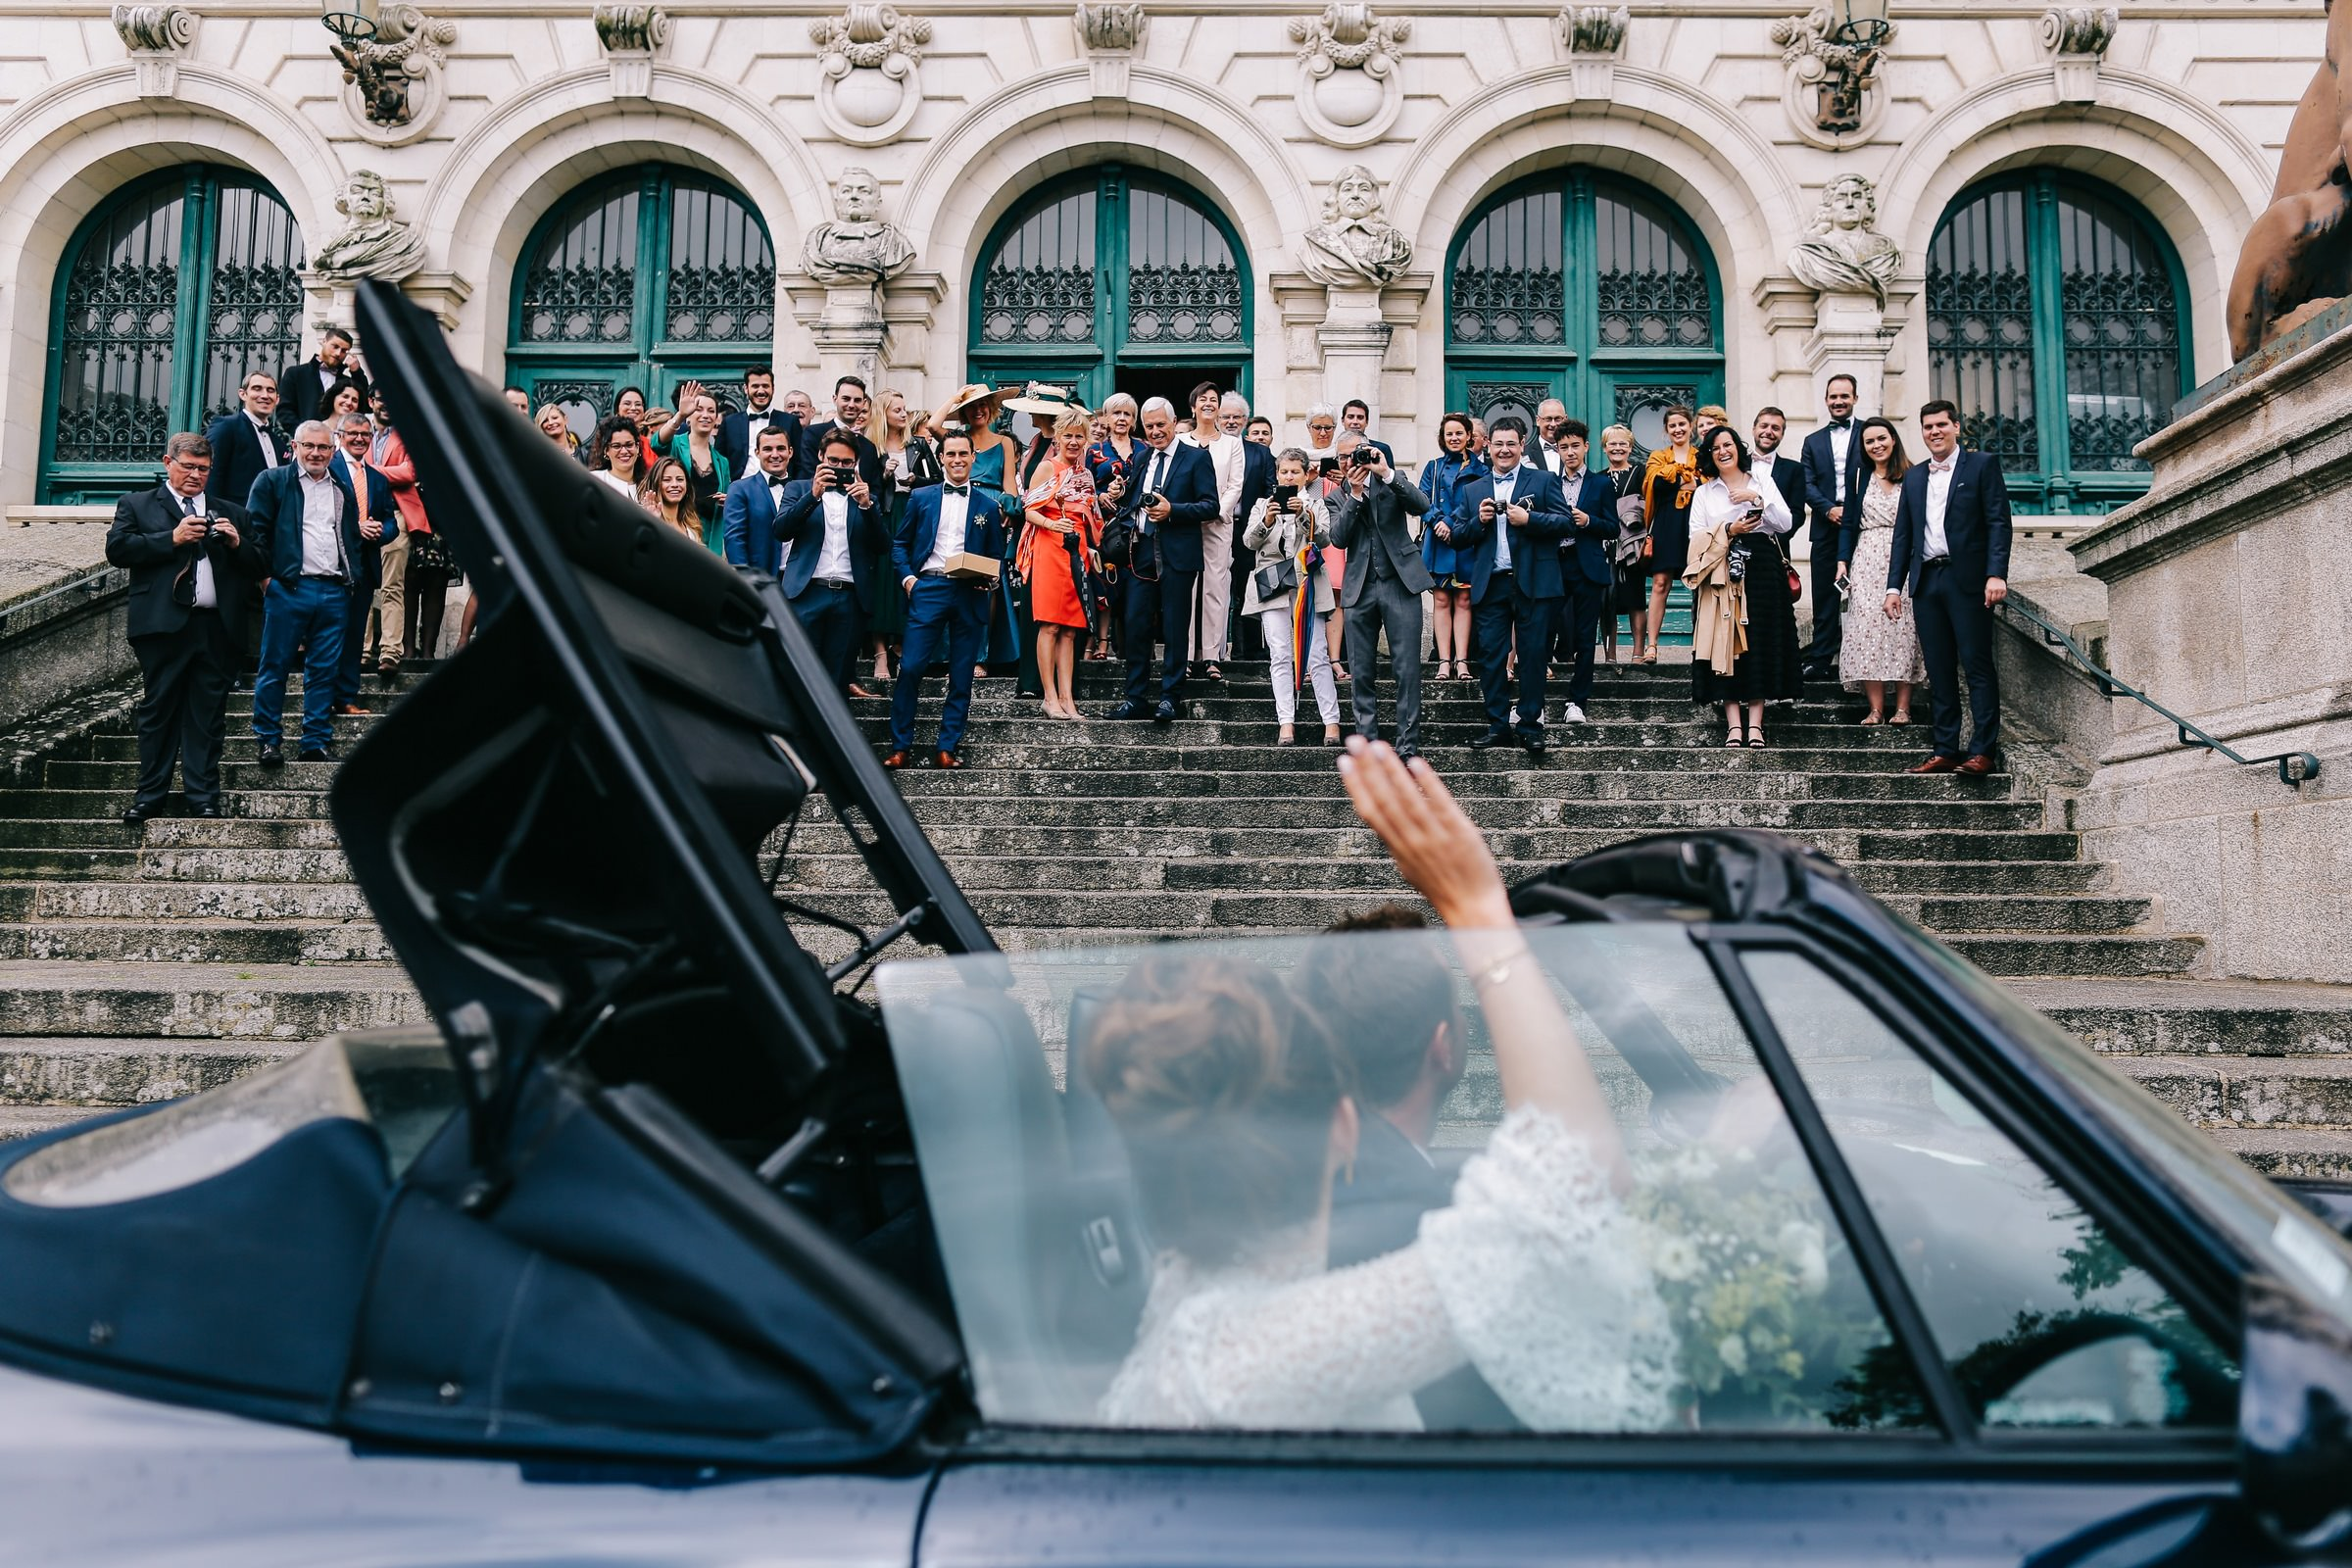 bride and groom waving to guests while driving away- photo by Amandine Ropars, france